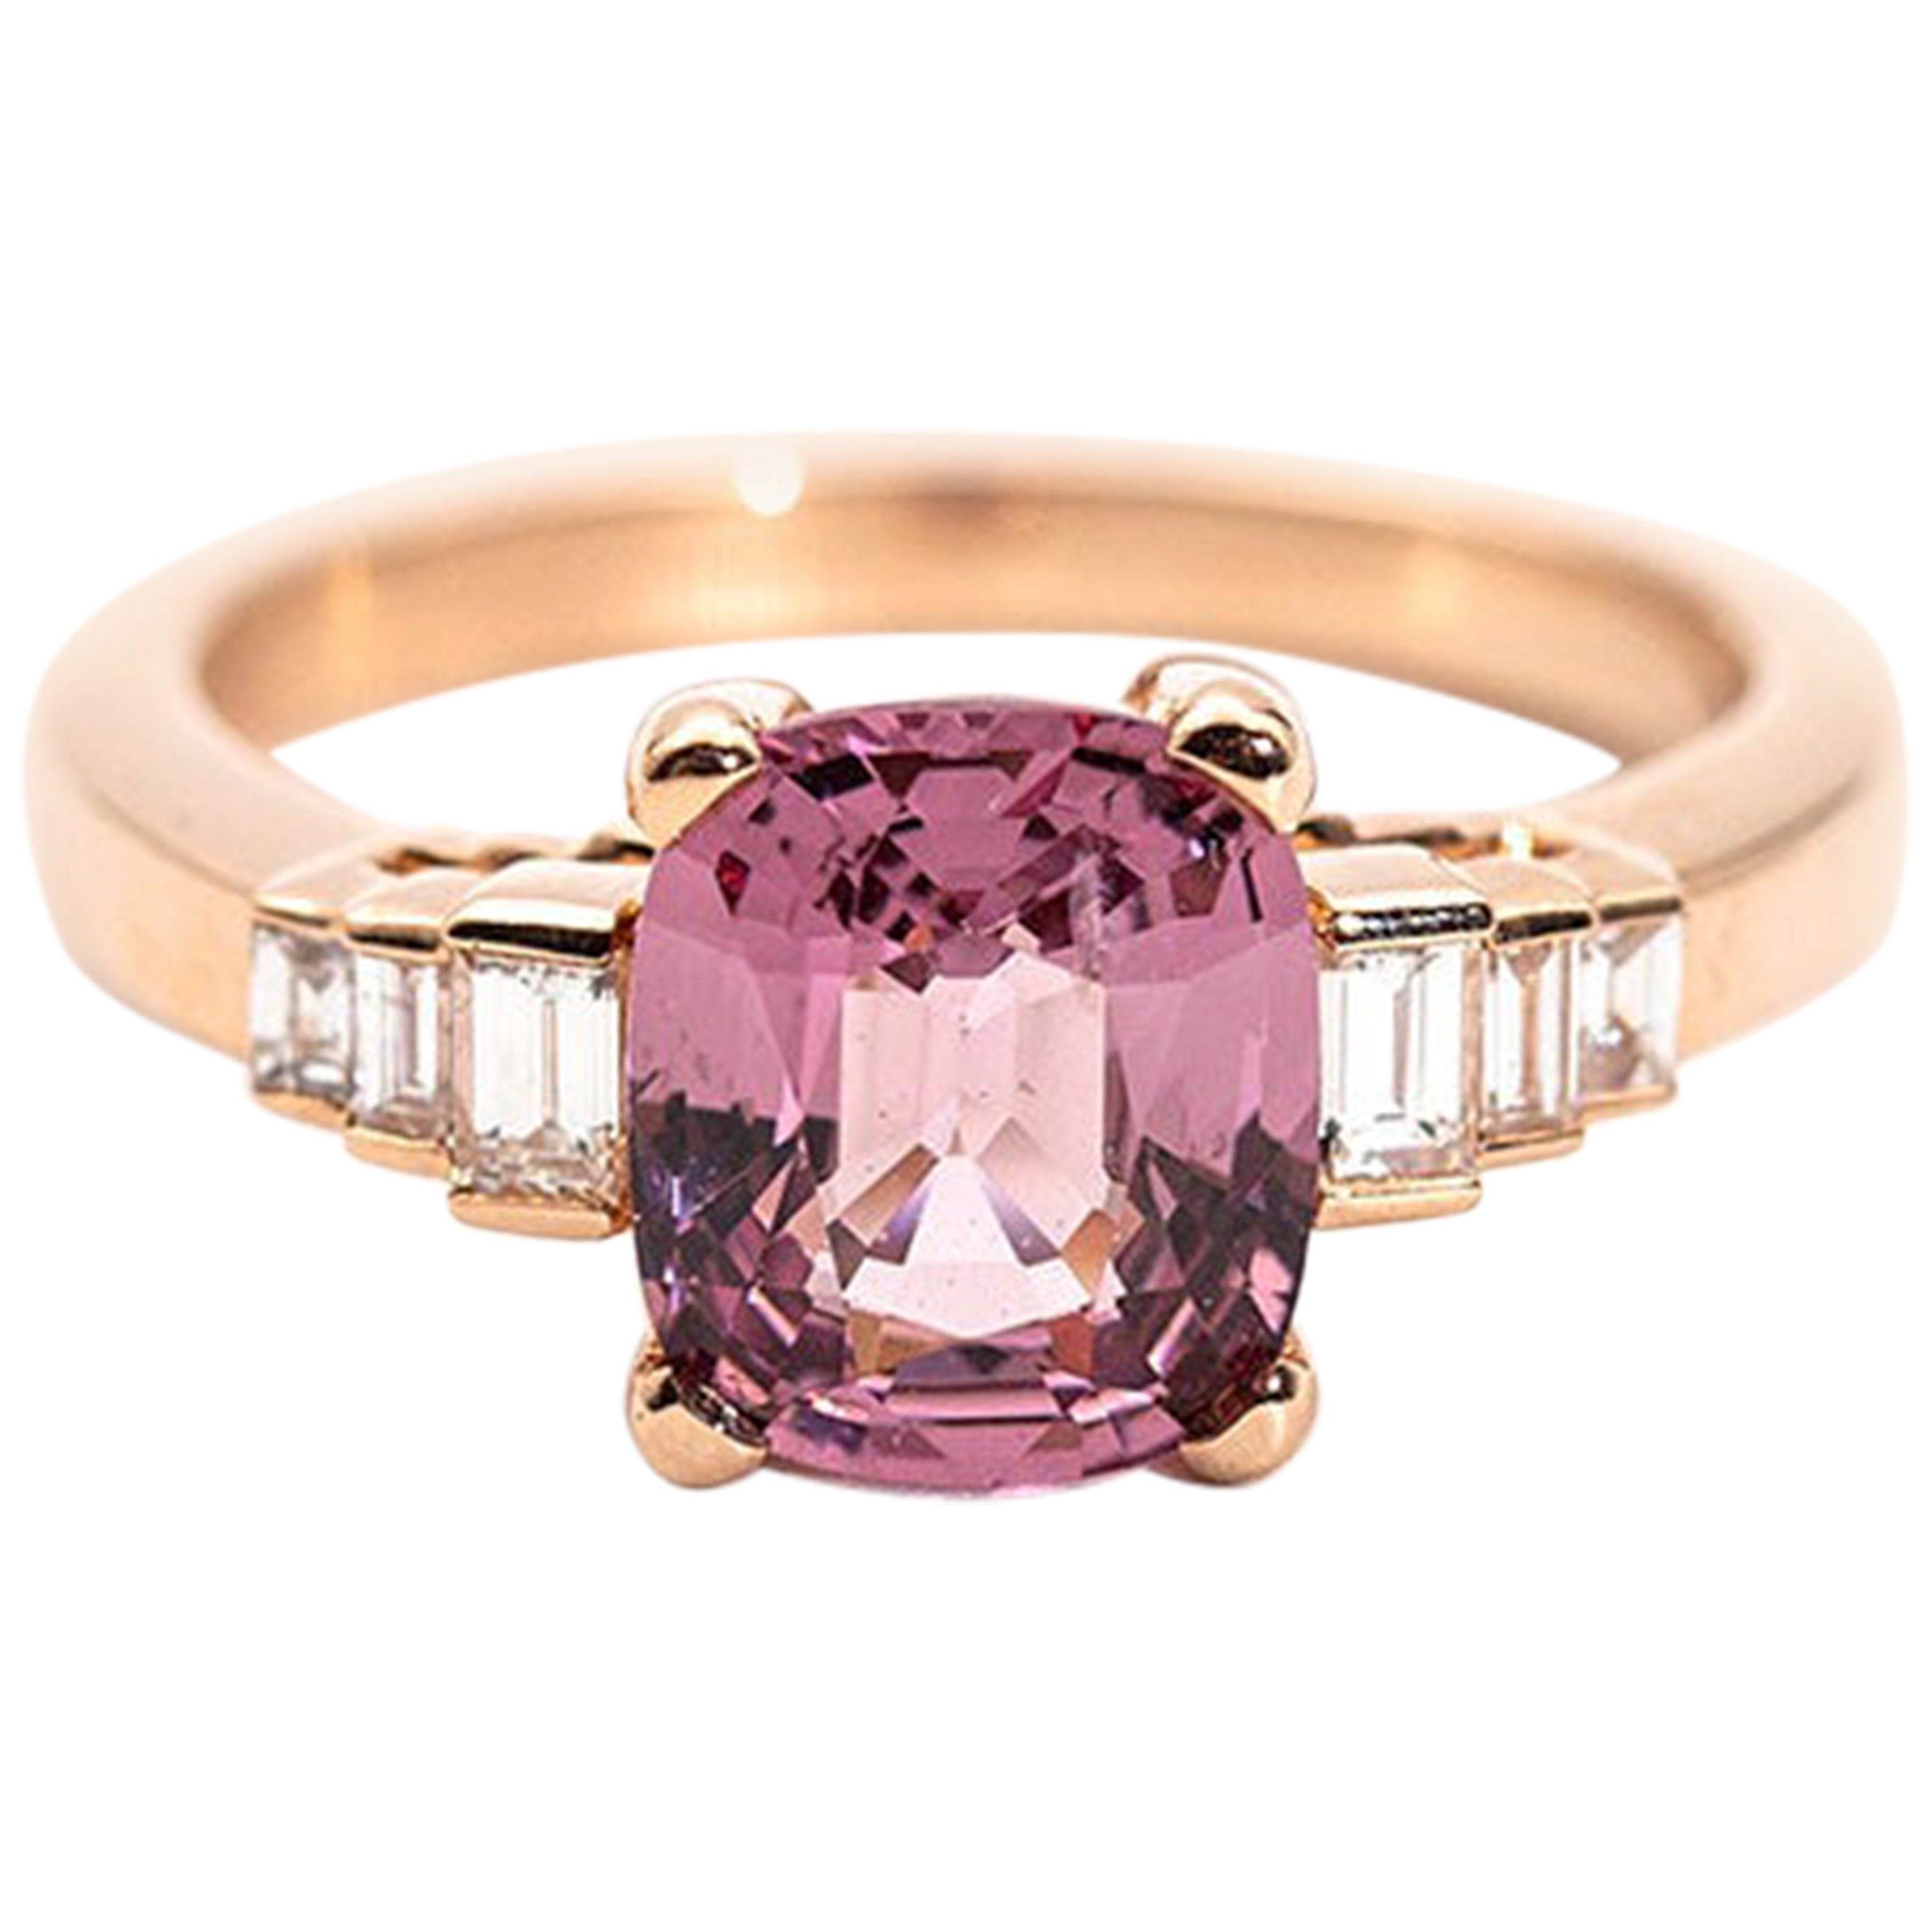 2.21 Carat Cushion Cut Bright Pink Spinel and Diamond 18 Carat Rose Gold Ring